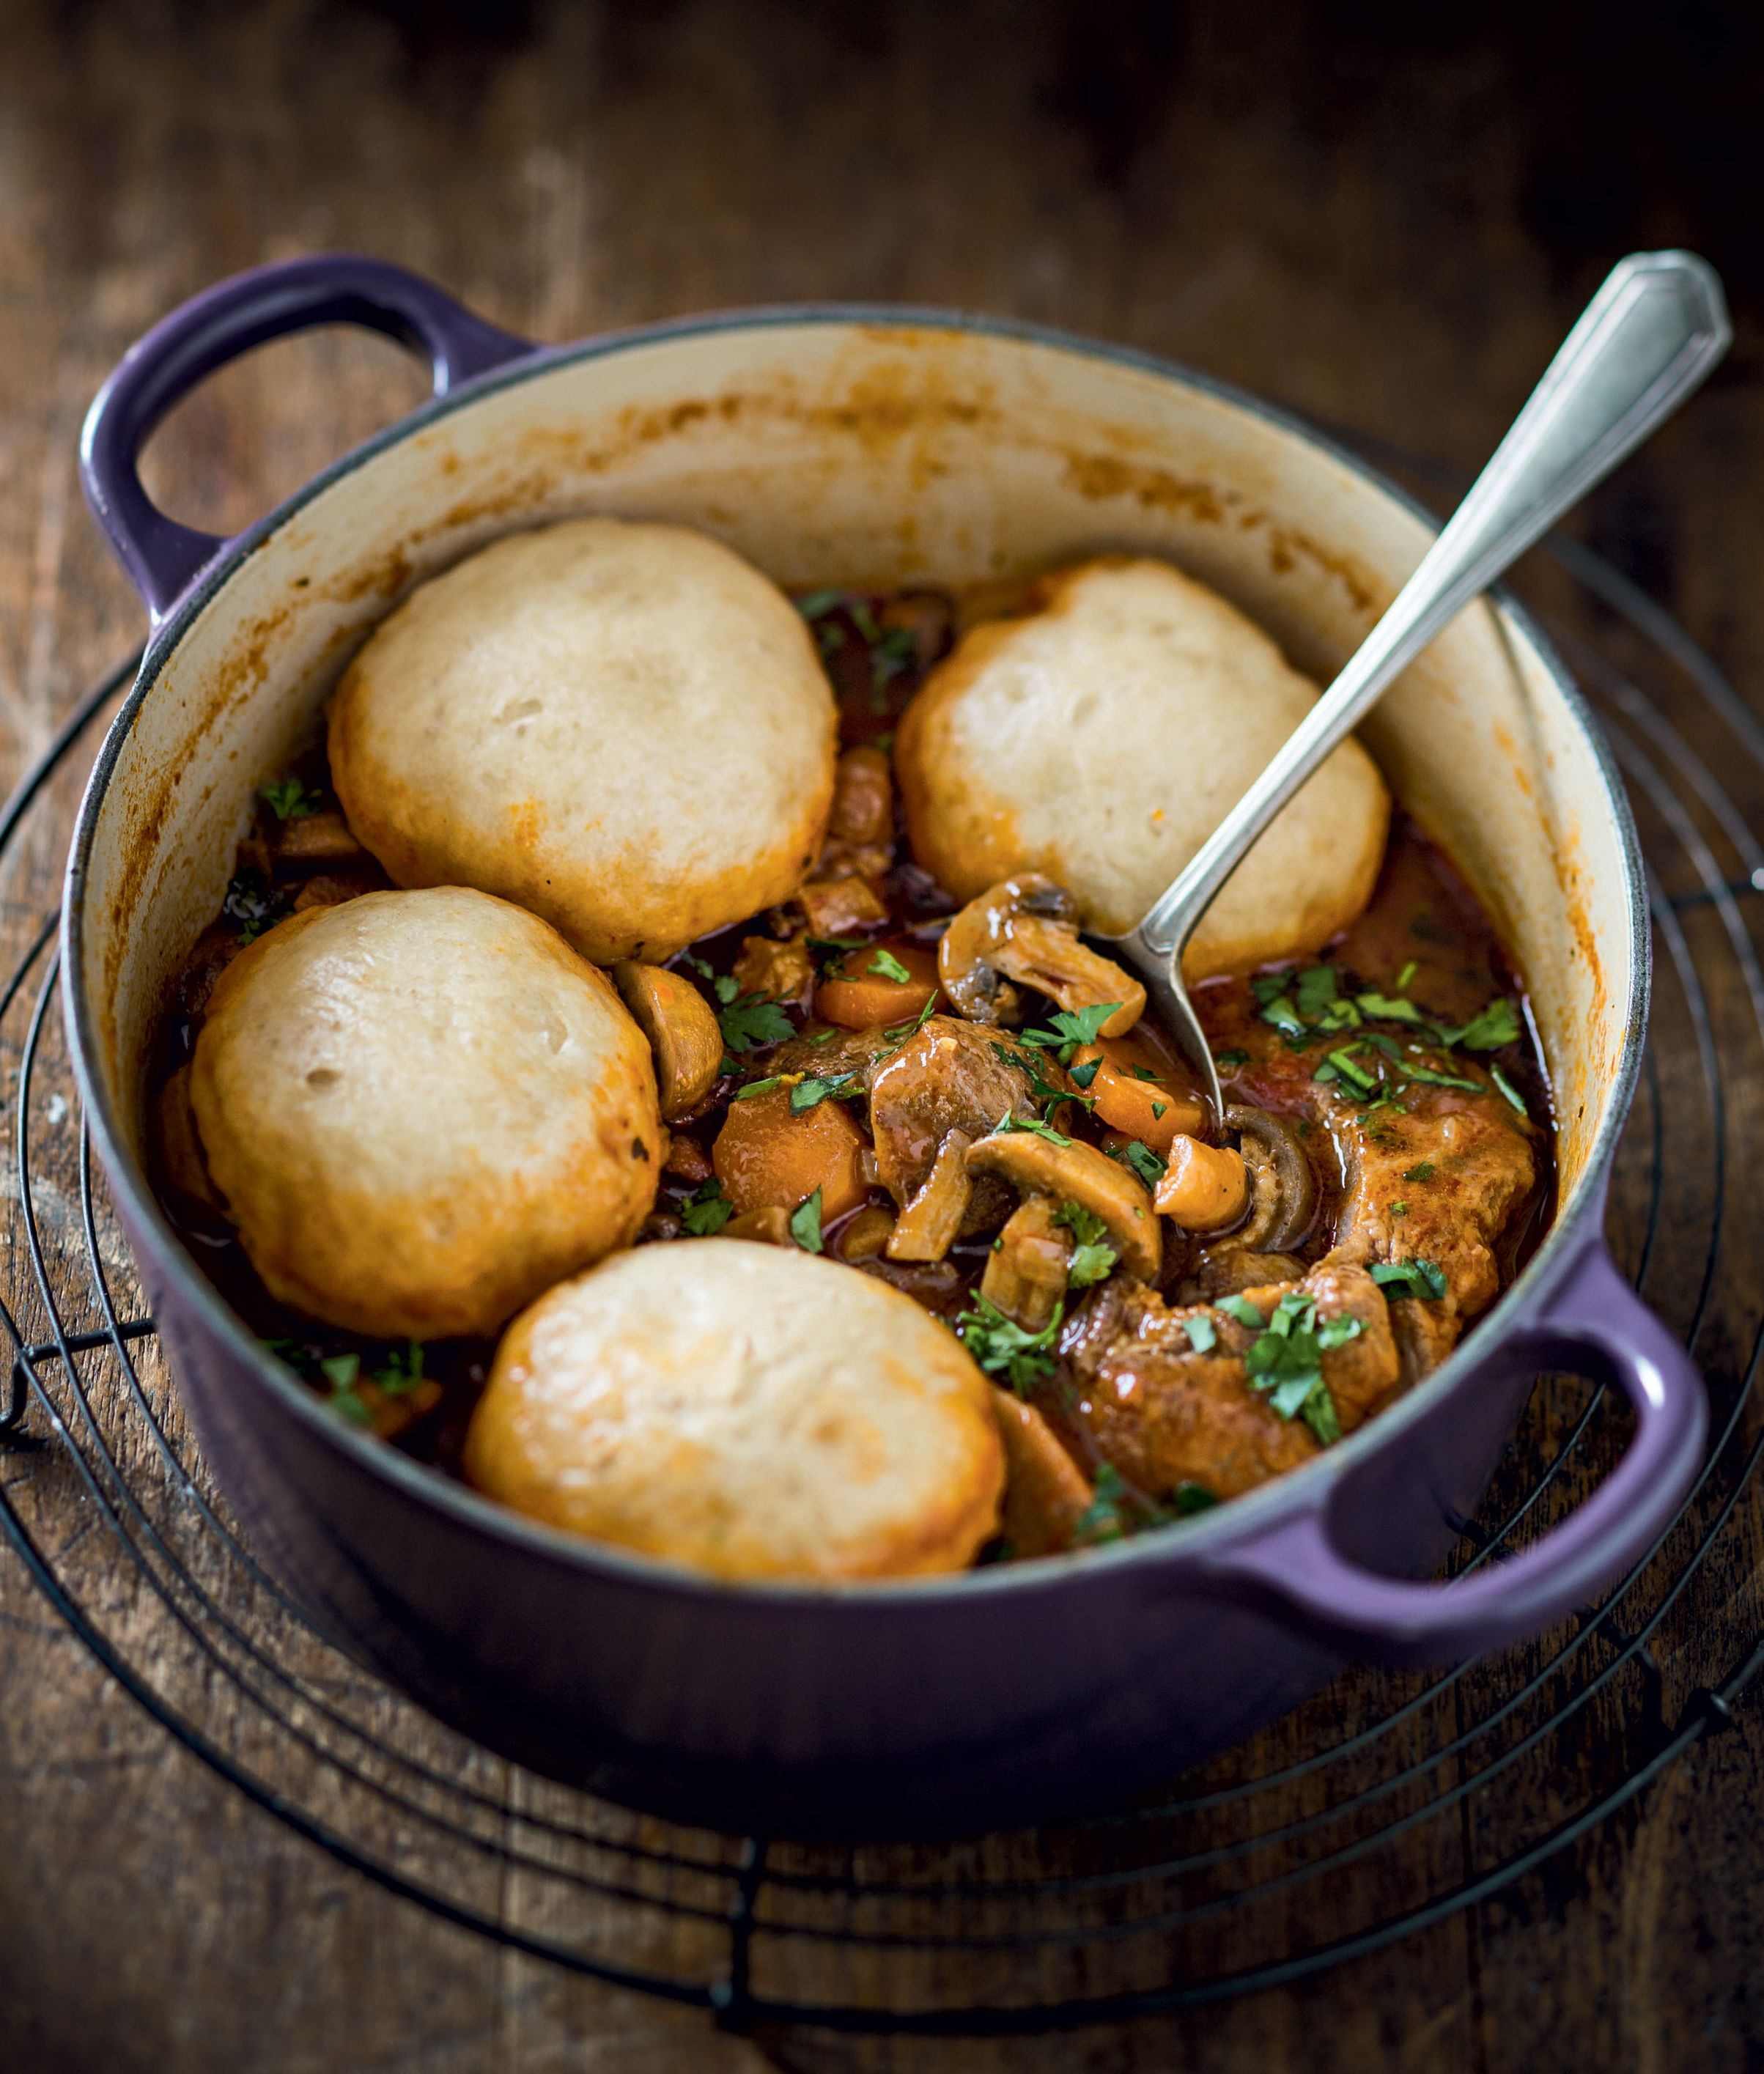 Old Fashioned Dumplings Perfect To Share With Your Other Half Stew And Dumplings Beef Stew With Dumplings Easy Dumplings Recipe